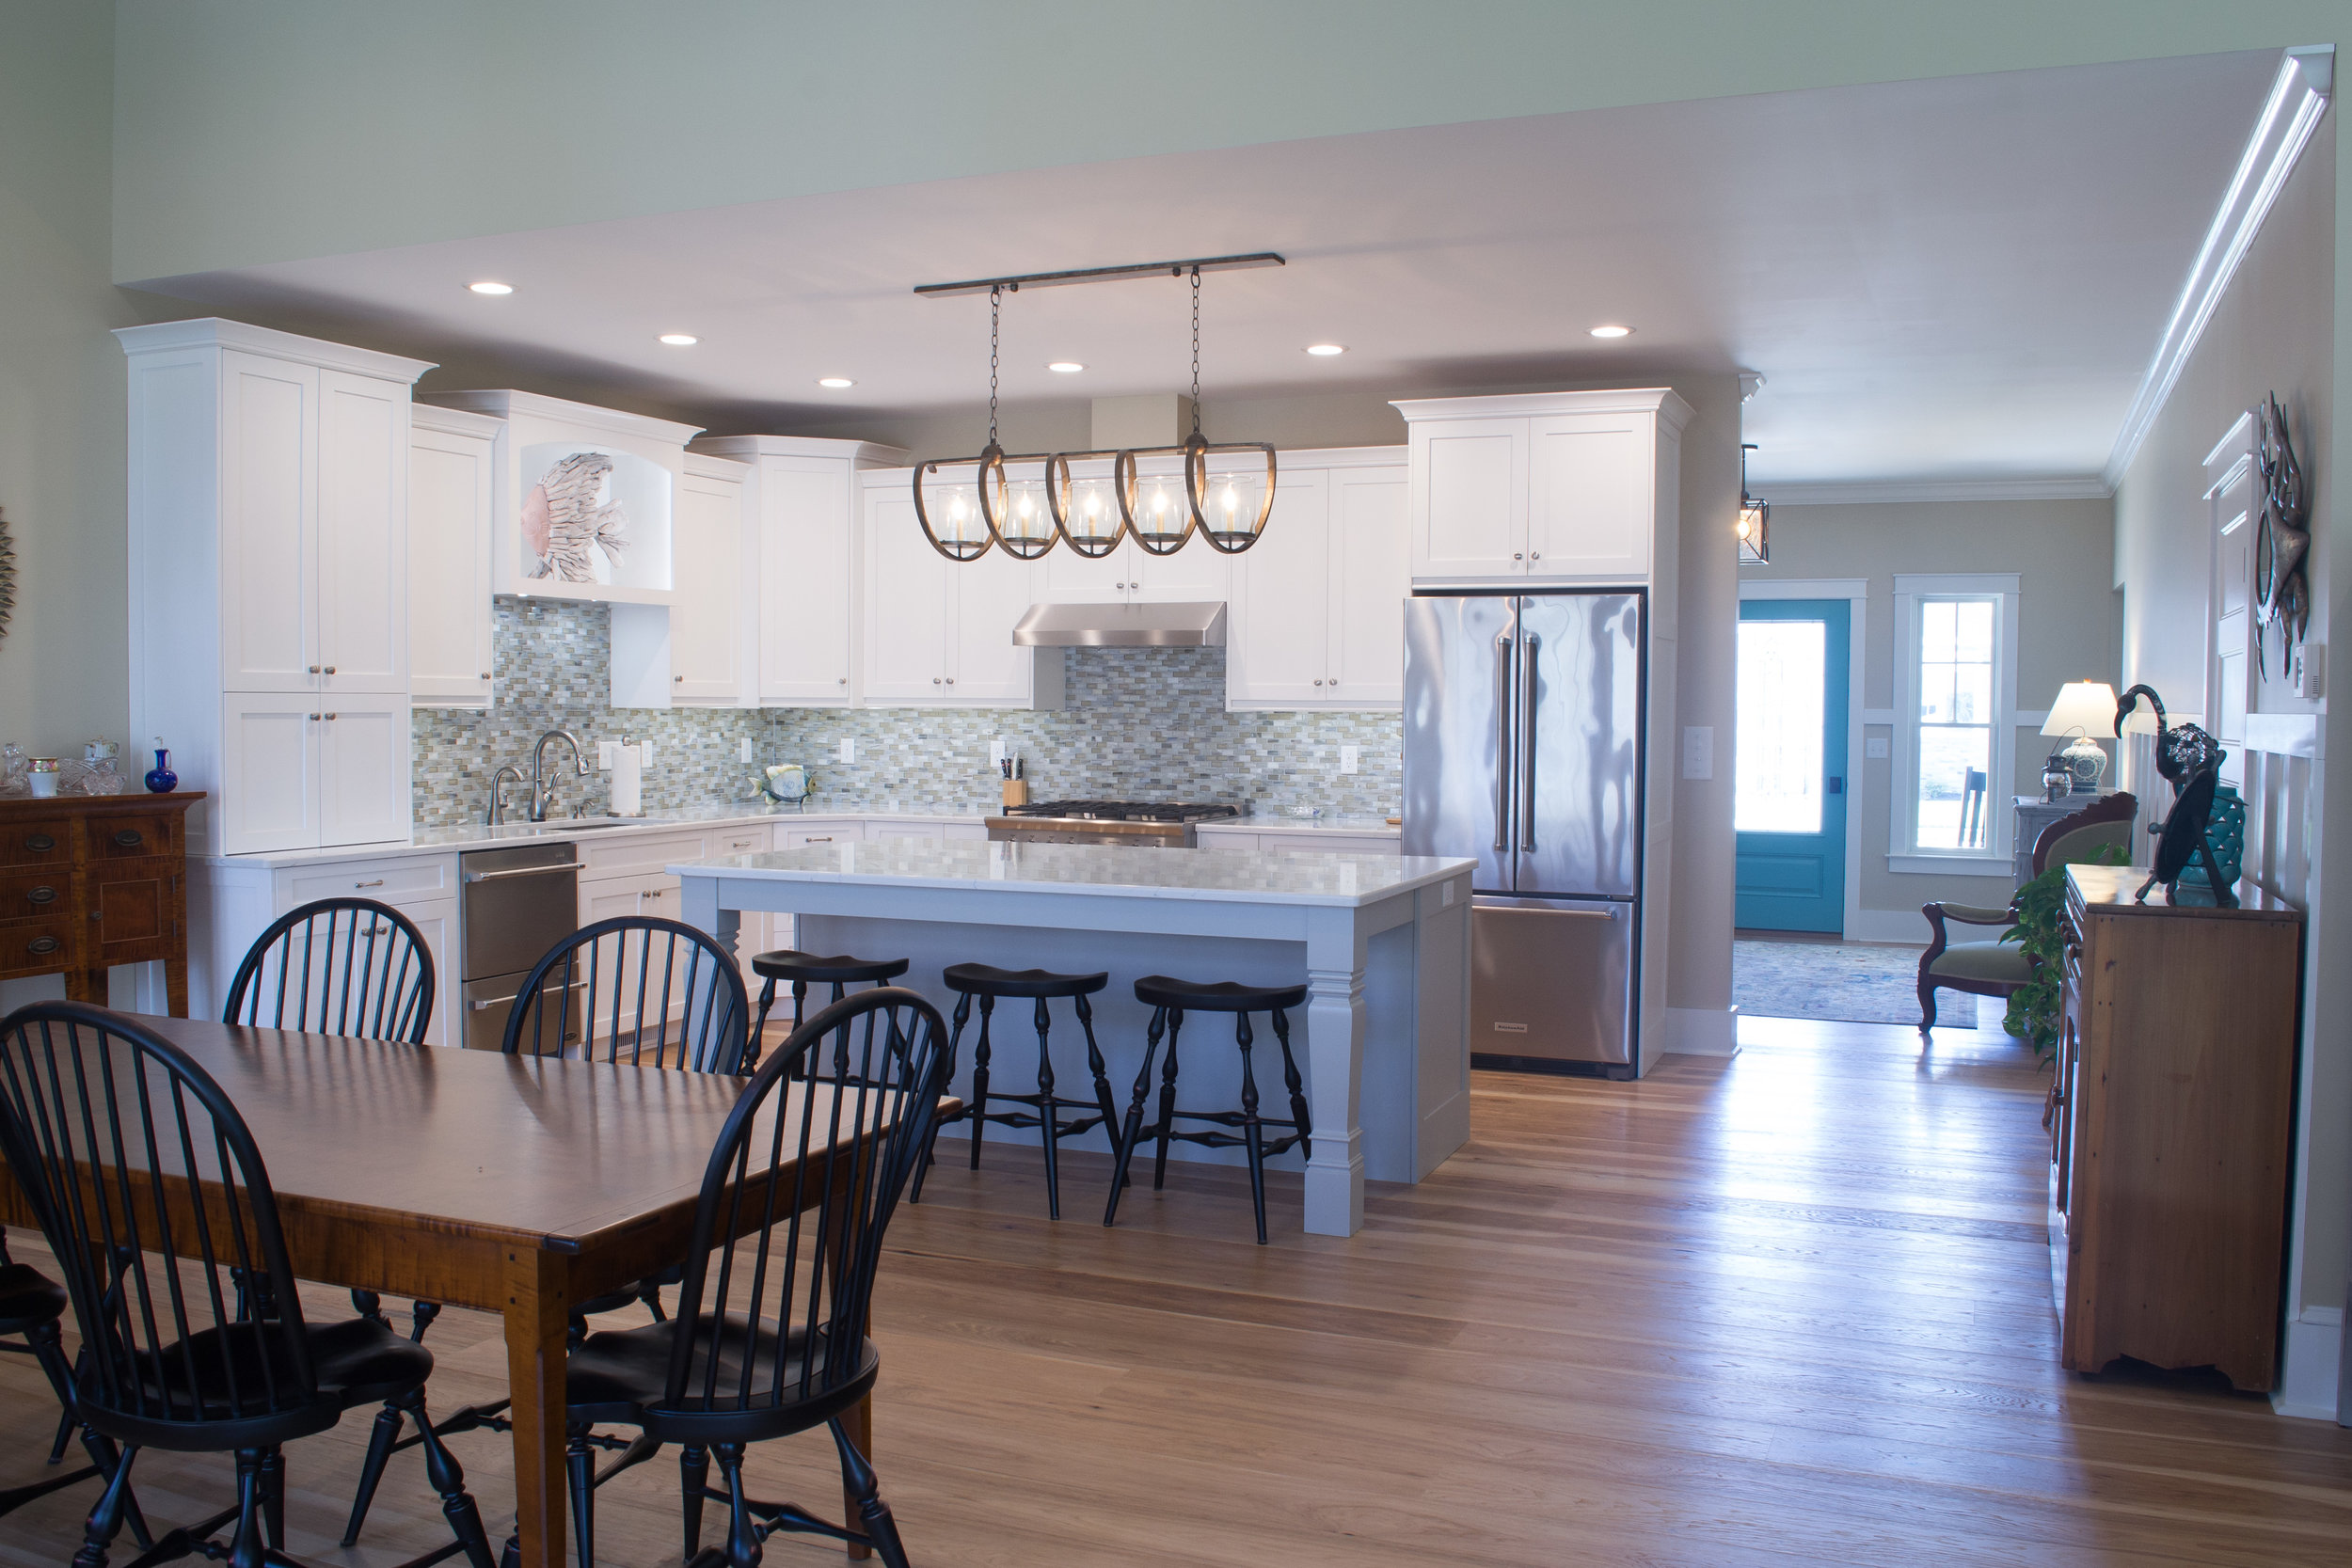 White painted kitchen with grey island